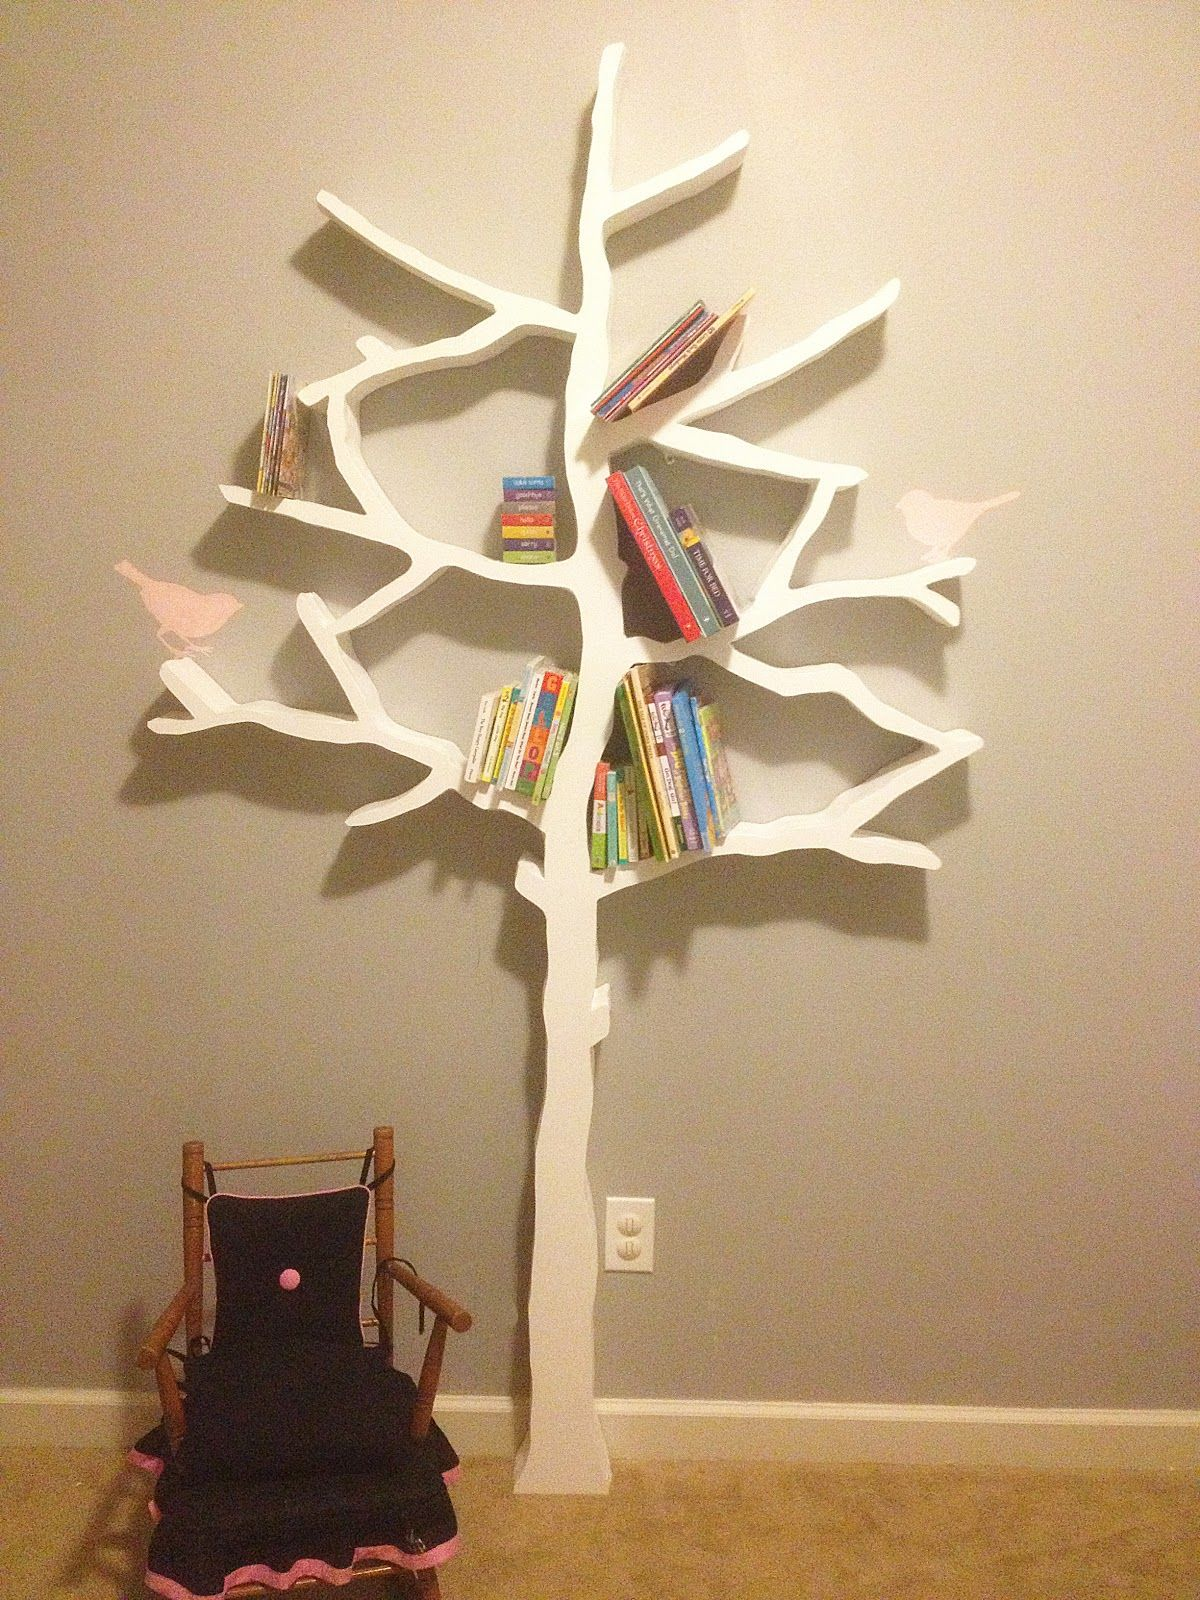 Walls Under Construction DIY Tree Bookshelf